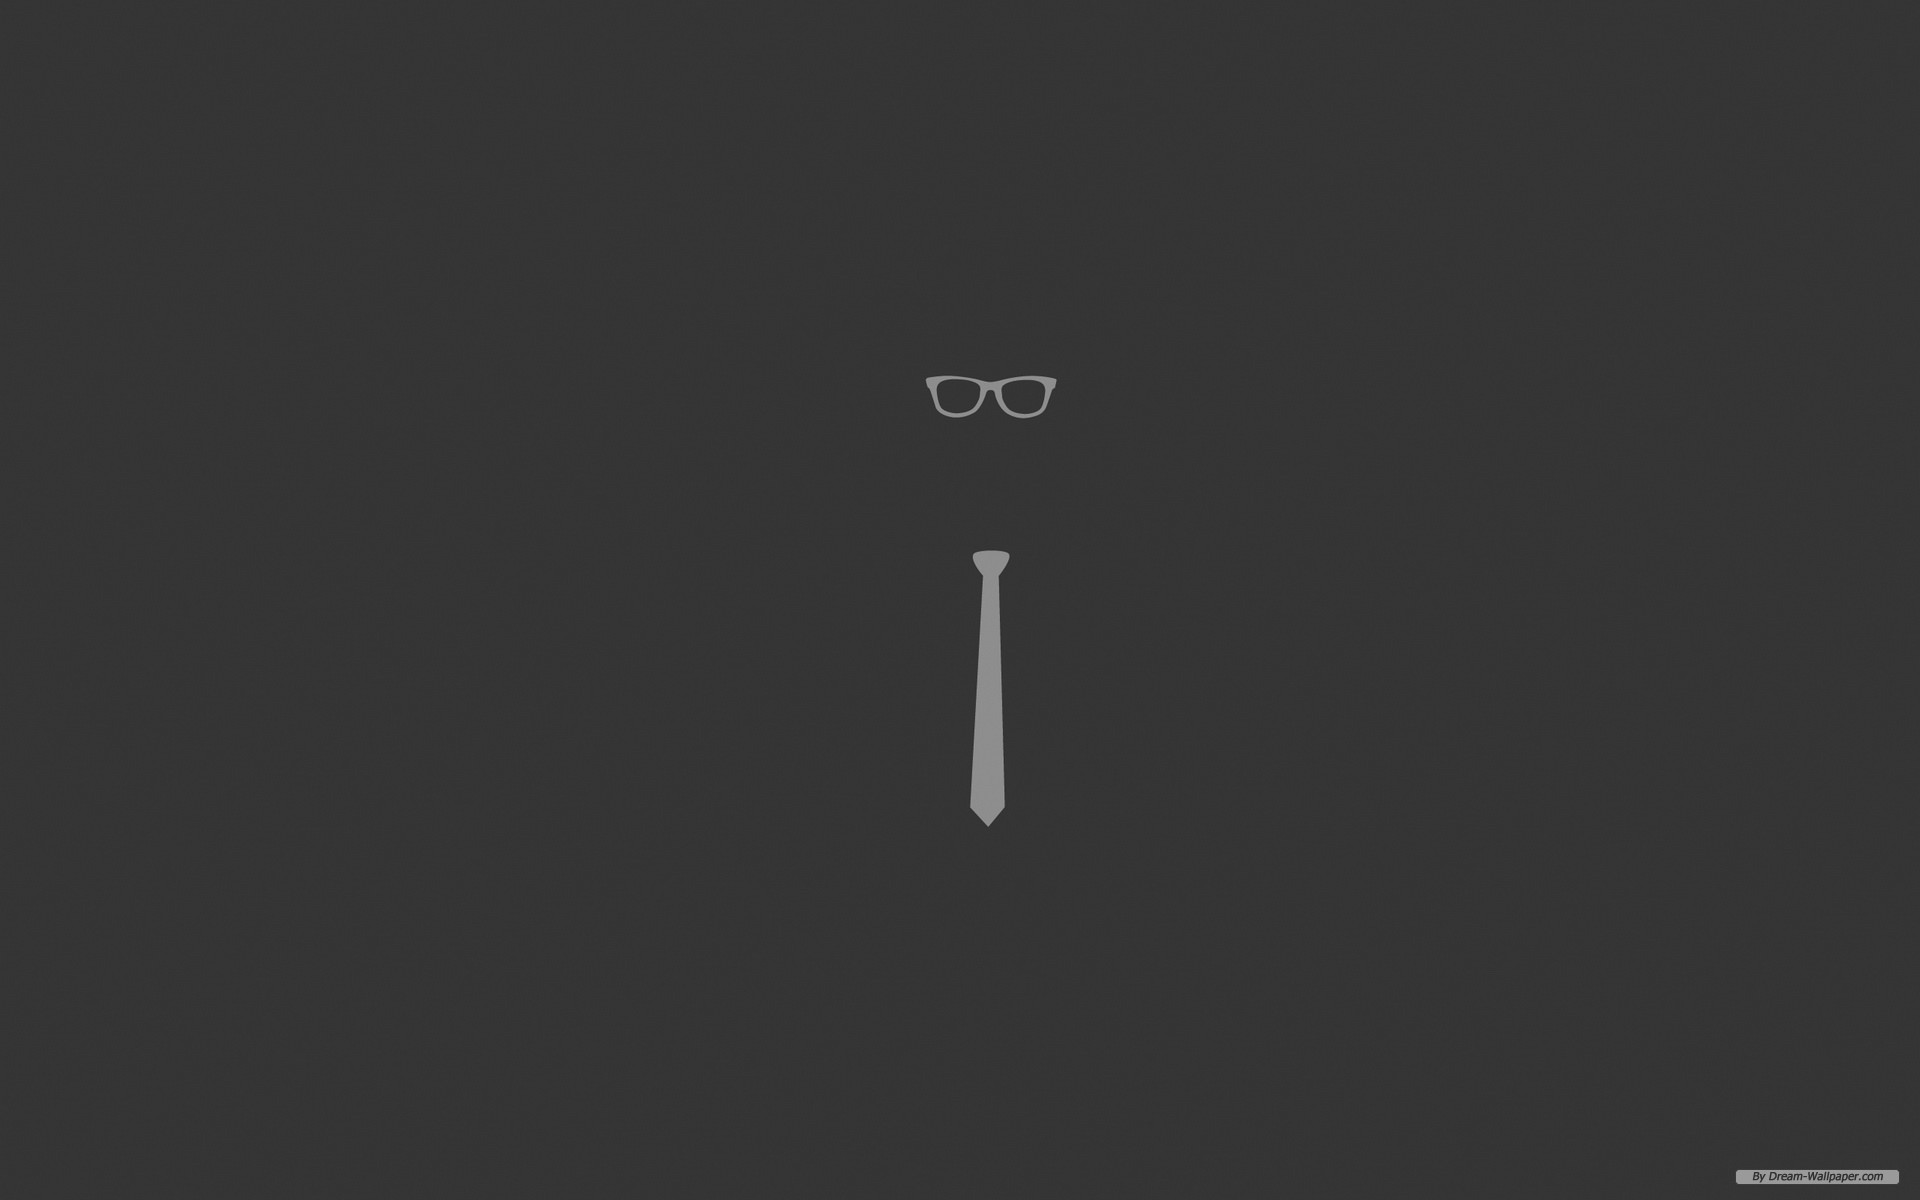 Minimalist art wallpaper wallpapersafari for Minimal artiste